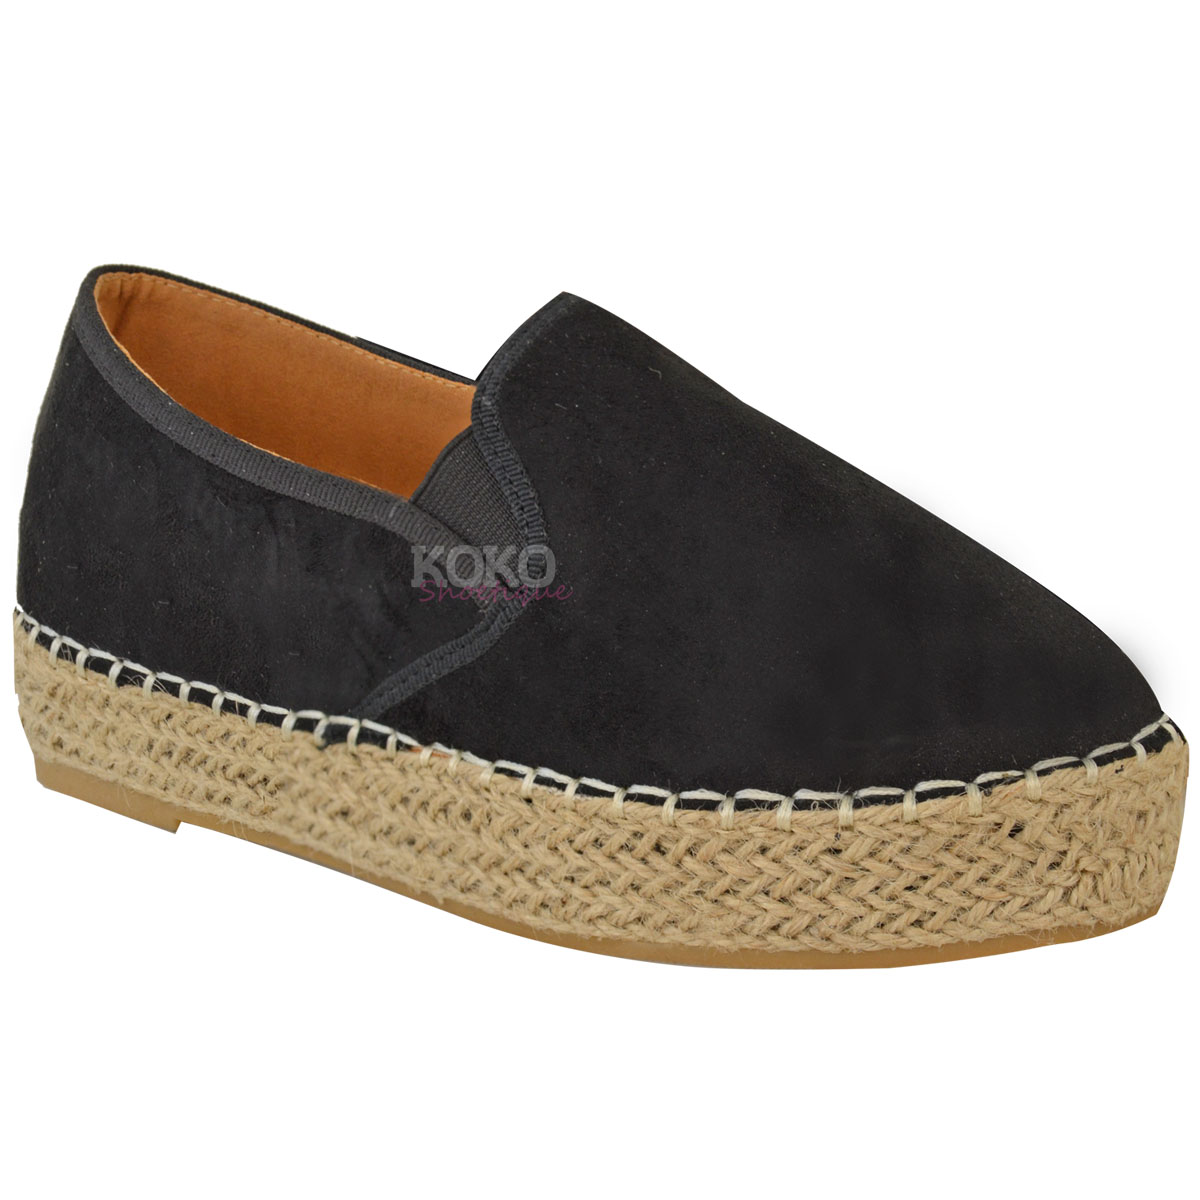 The humble espadrille makes a powerful comeback every year, and from simple canvas ladies flats to glamorous wedge sandals; we couldn't be without them. So if you're looking for more than just a flip-flop this holiday, check out our collection of flat, backless and wedge espadrilles for ladies.